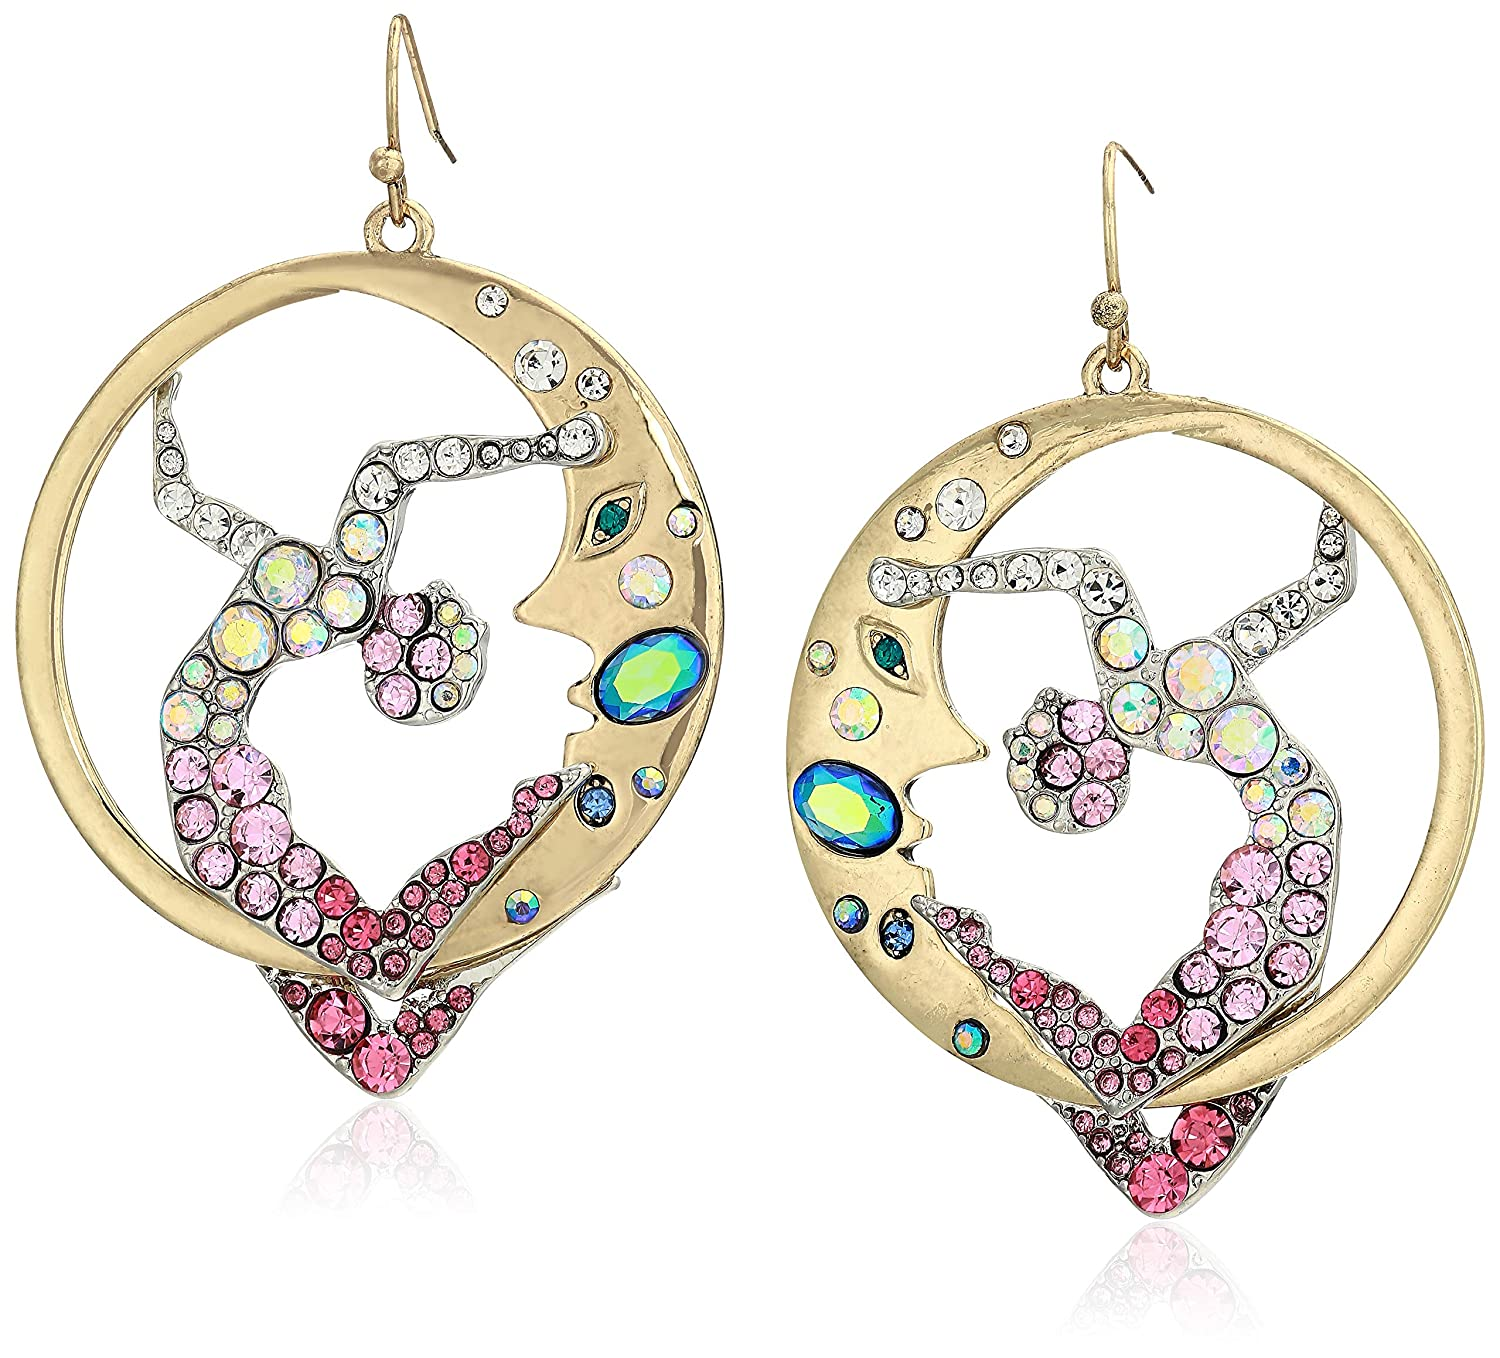 Amazon.com: Betsey Johnson Jewelry - Pendientes de gota para ...